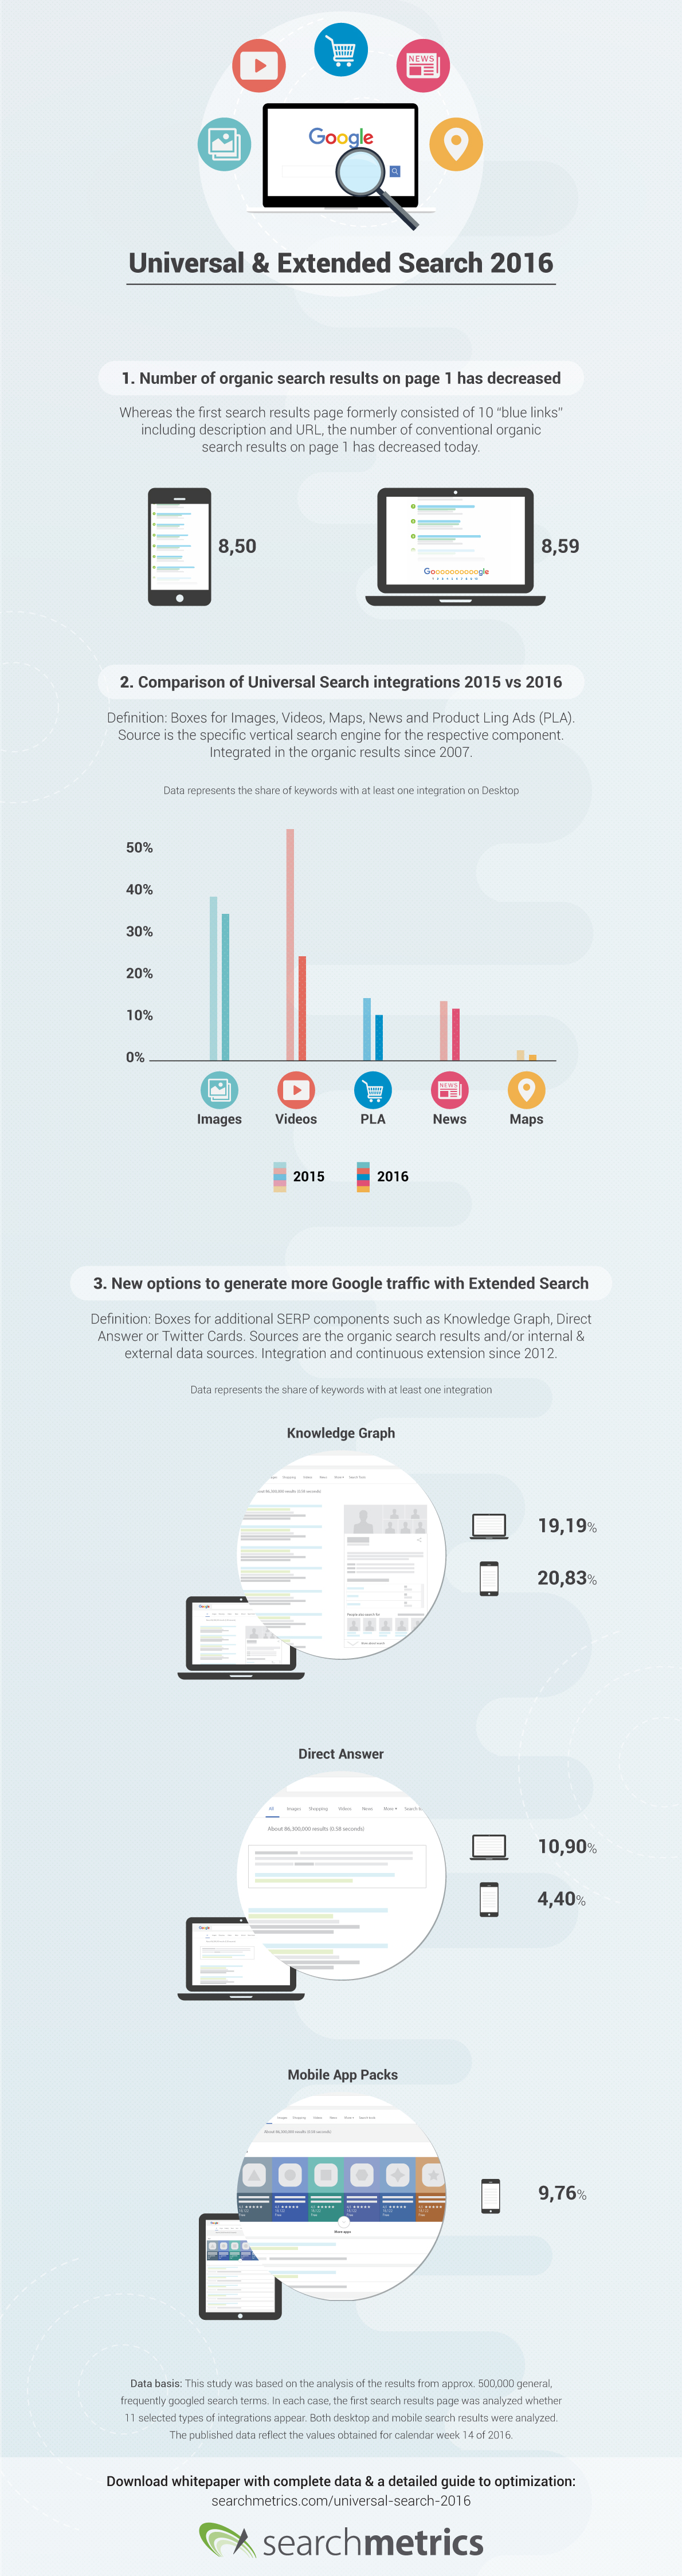 Searchmetrics Infographic Universal & Extended Search US 2016